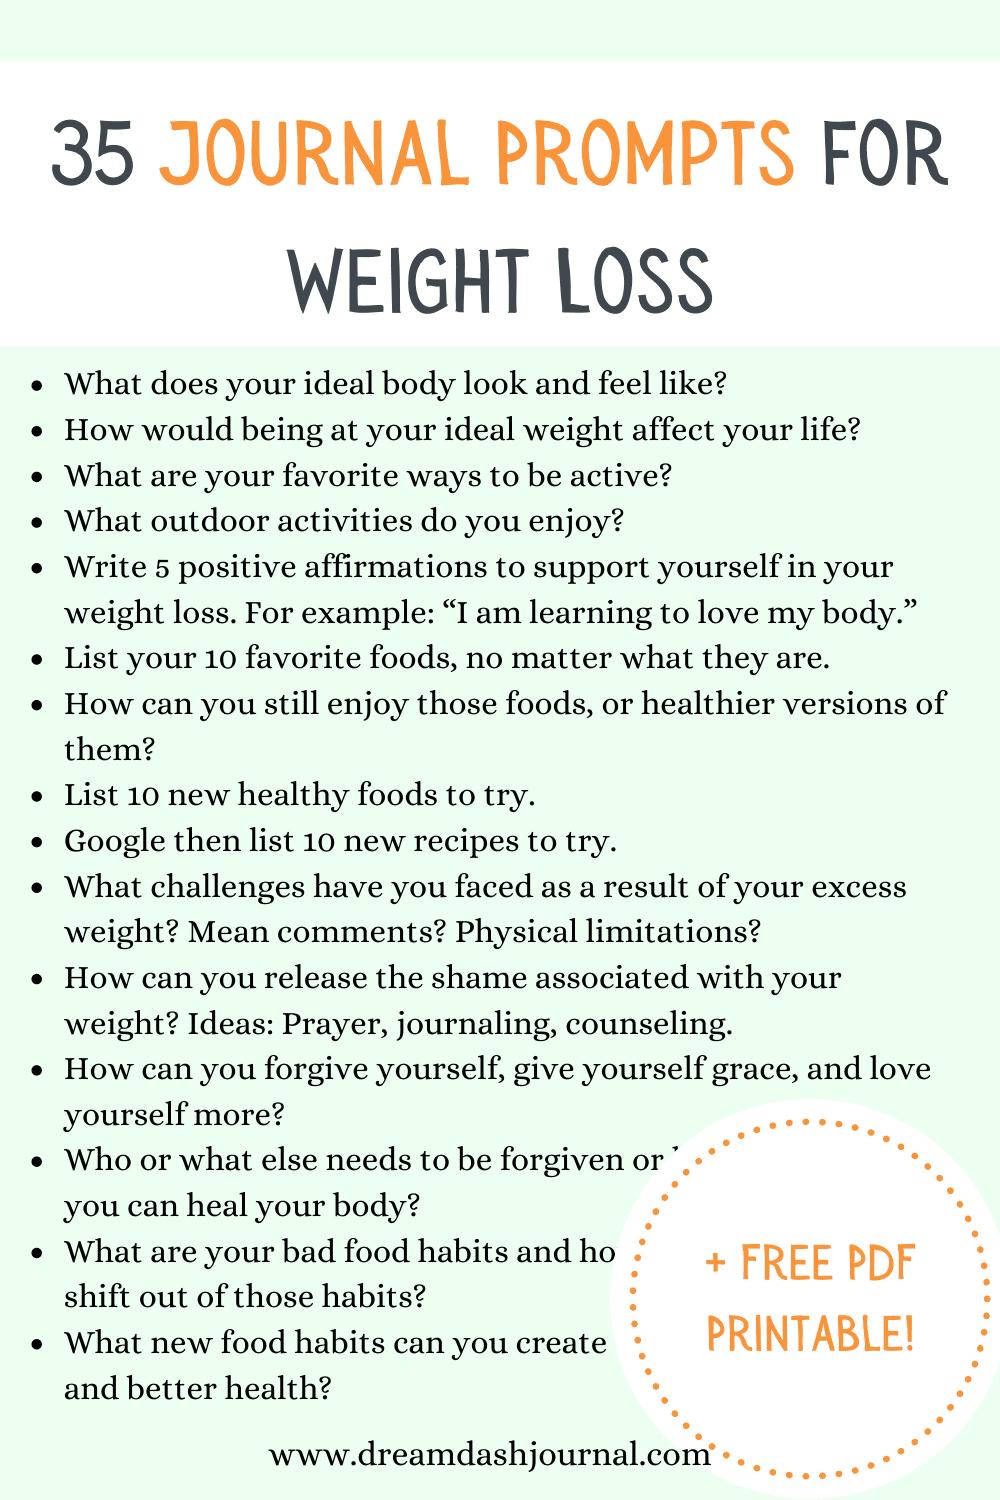 35 Journal Prompts for Weight Loss With Free PDF Printable Worksheet